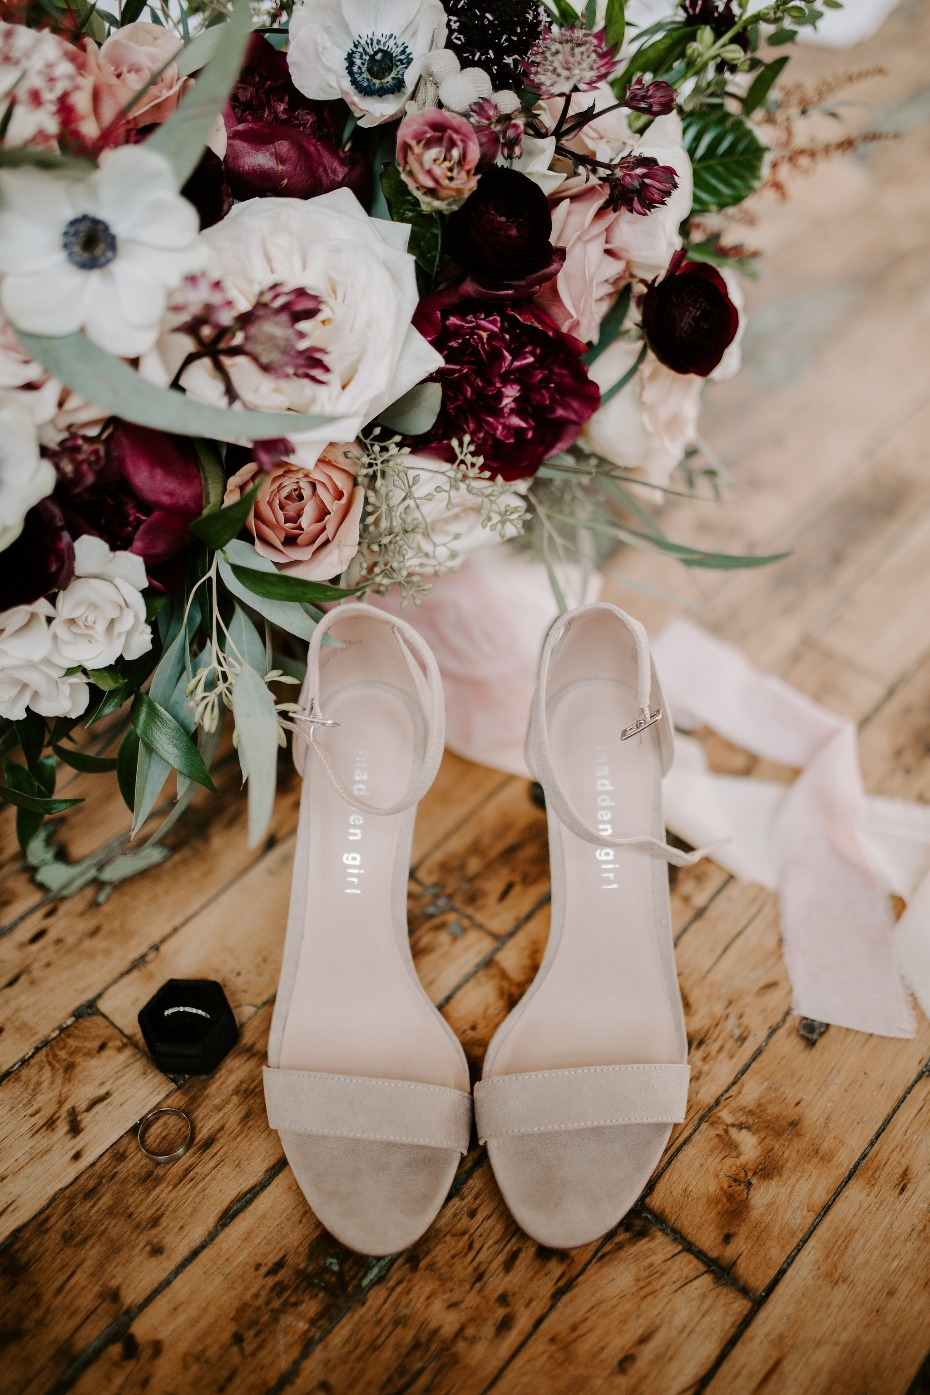 Beige wedding heels